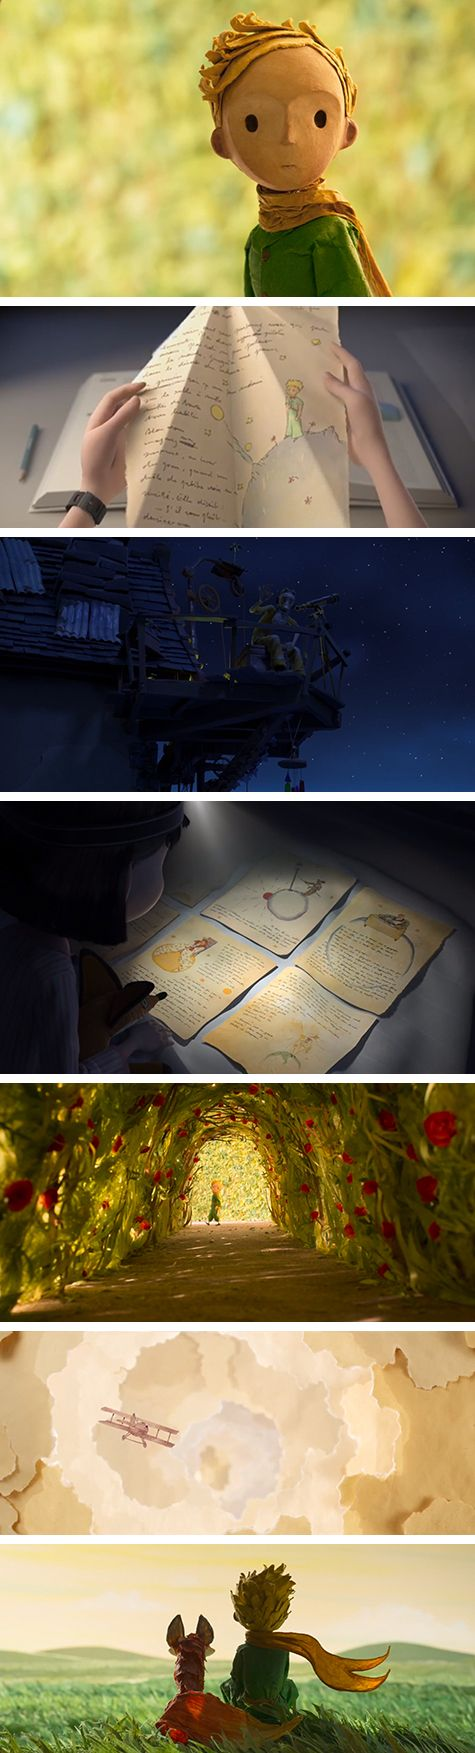 "First images from the #trailer for ""The little Prince"", by Tor.com. Looking forward to it. #petitprince"